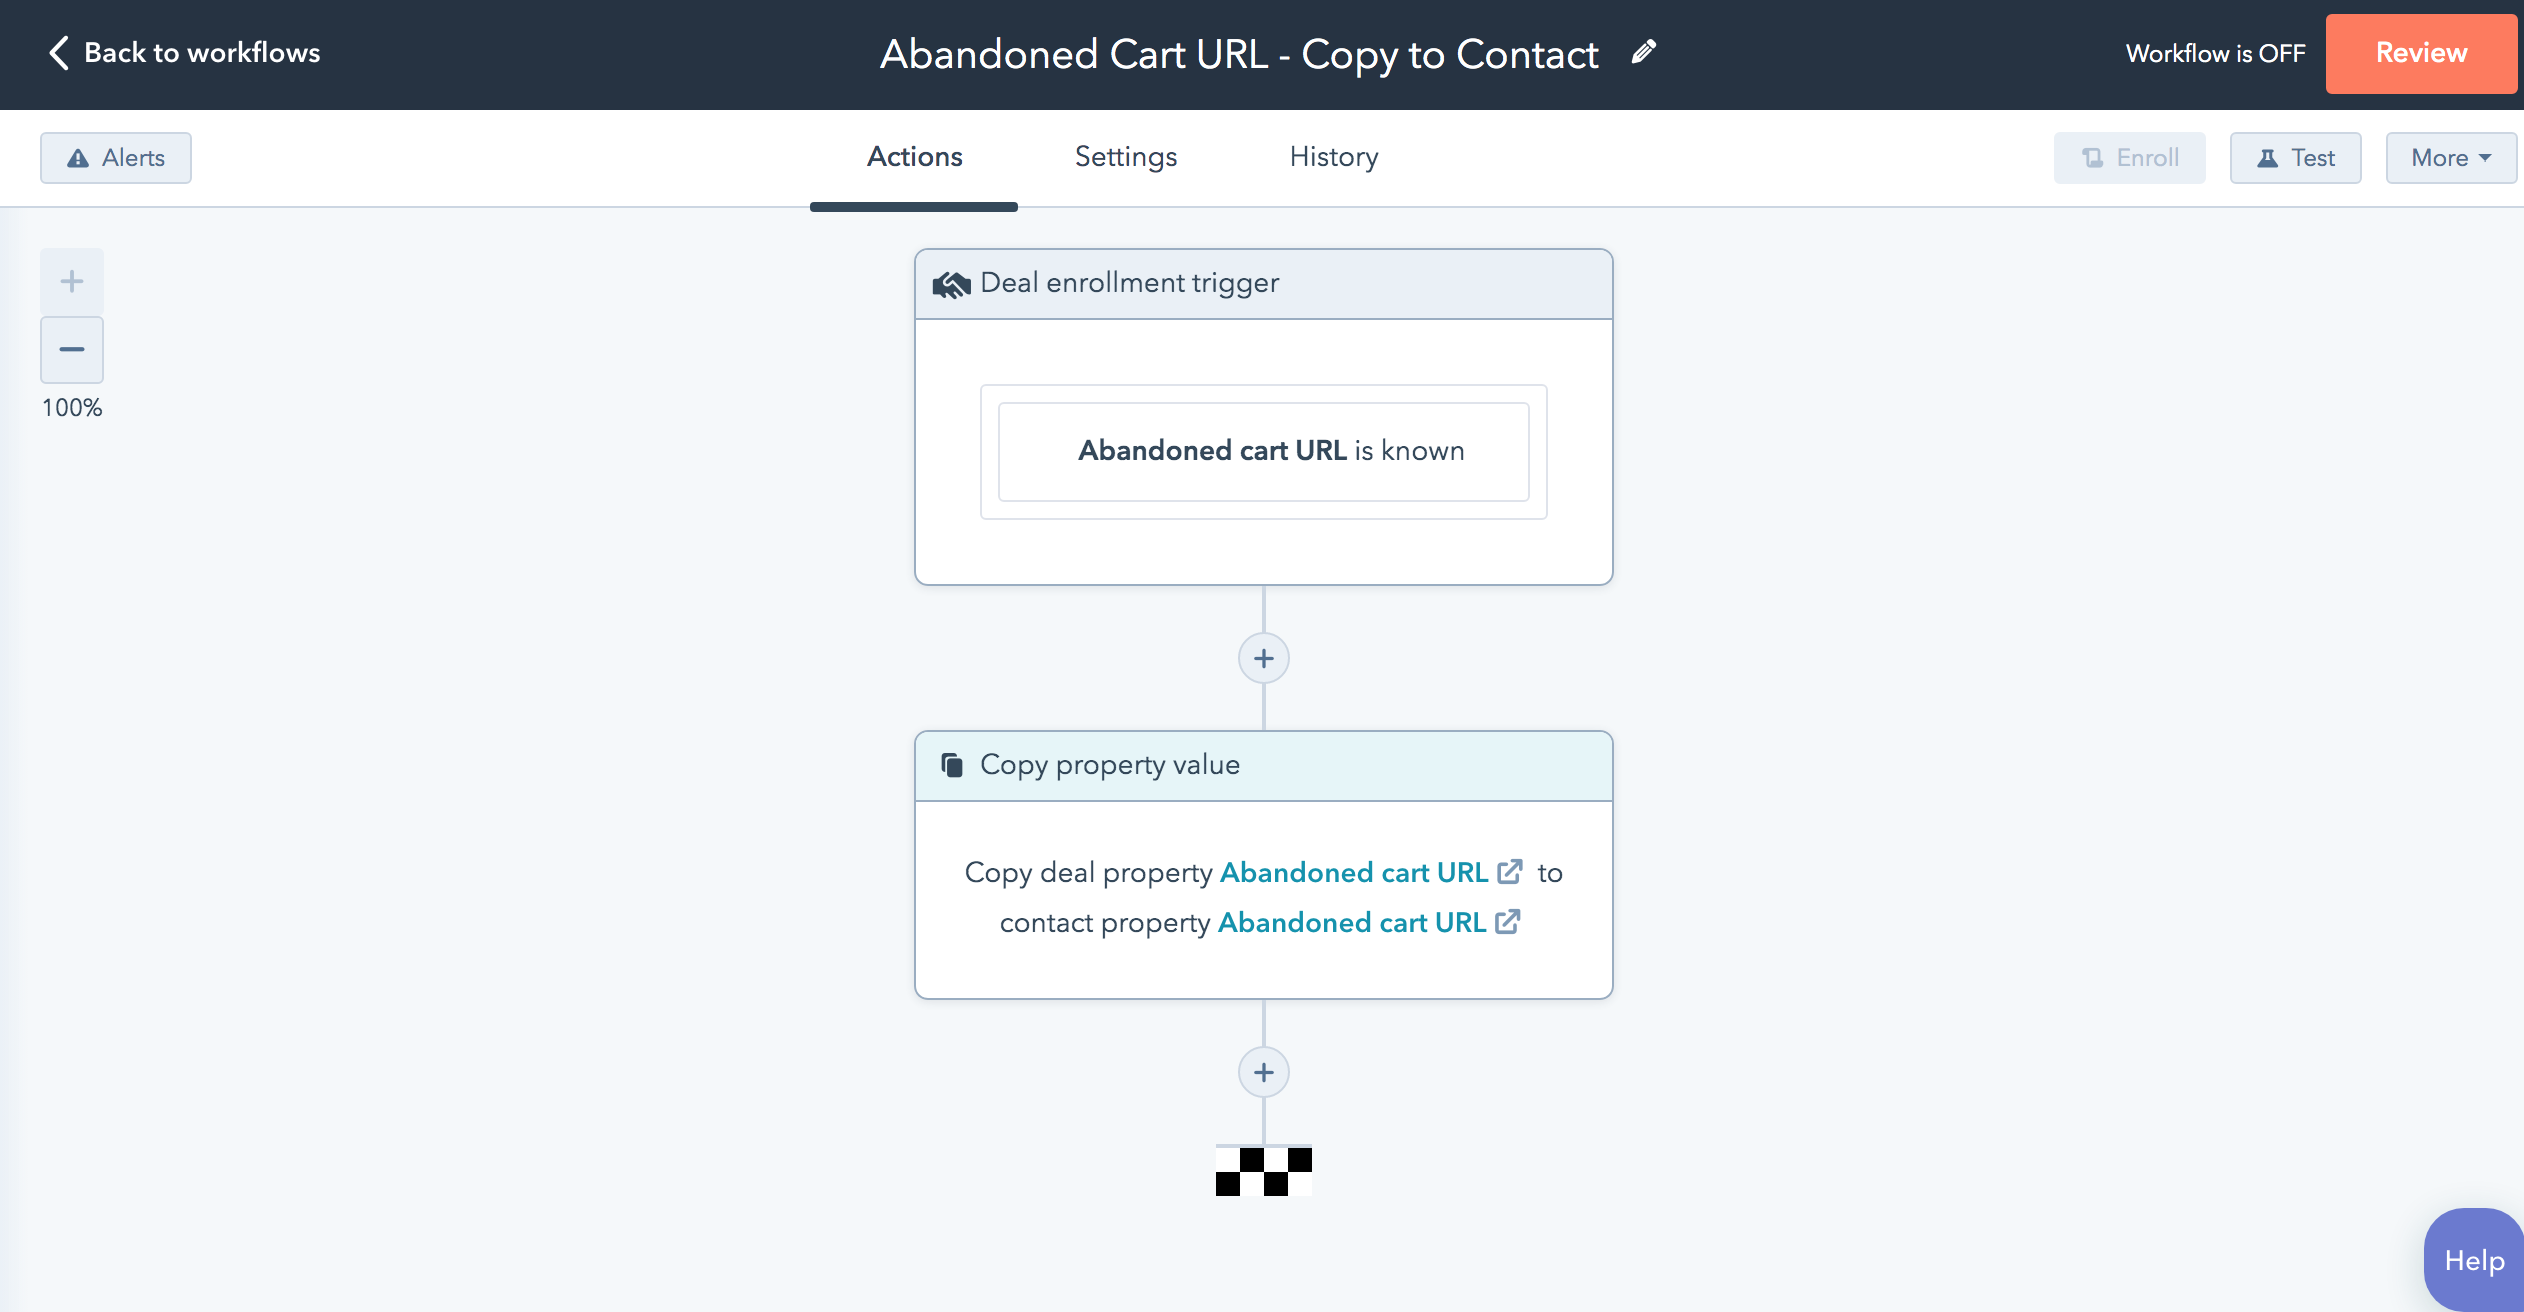 Copy to contact workflow